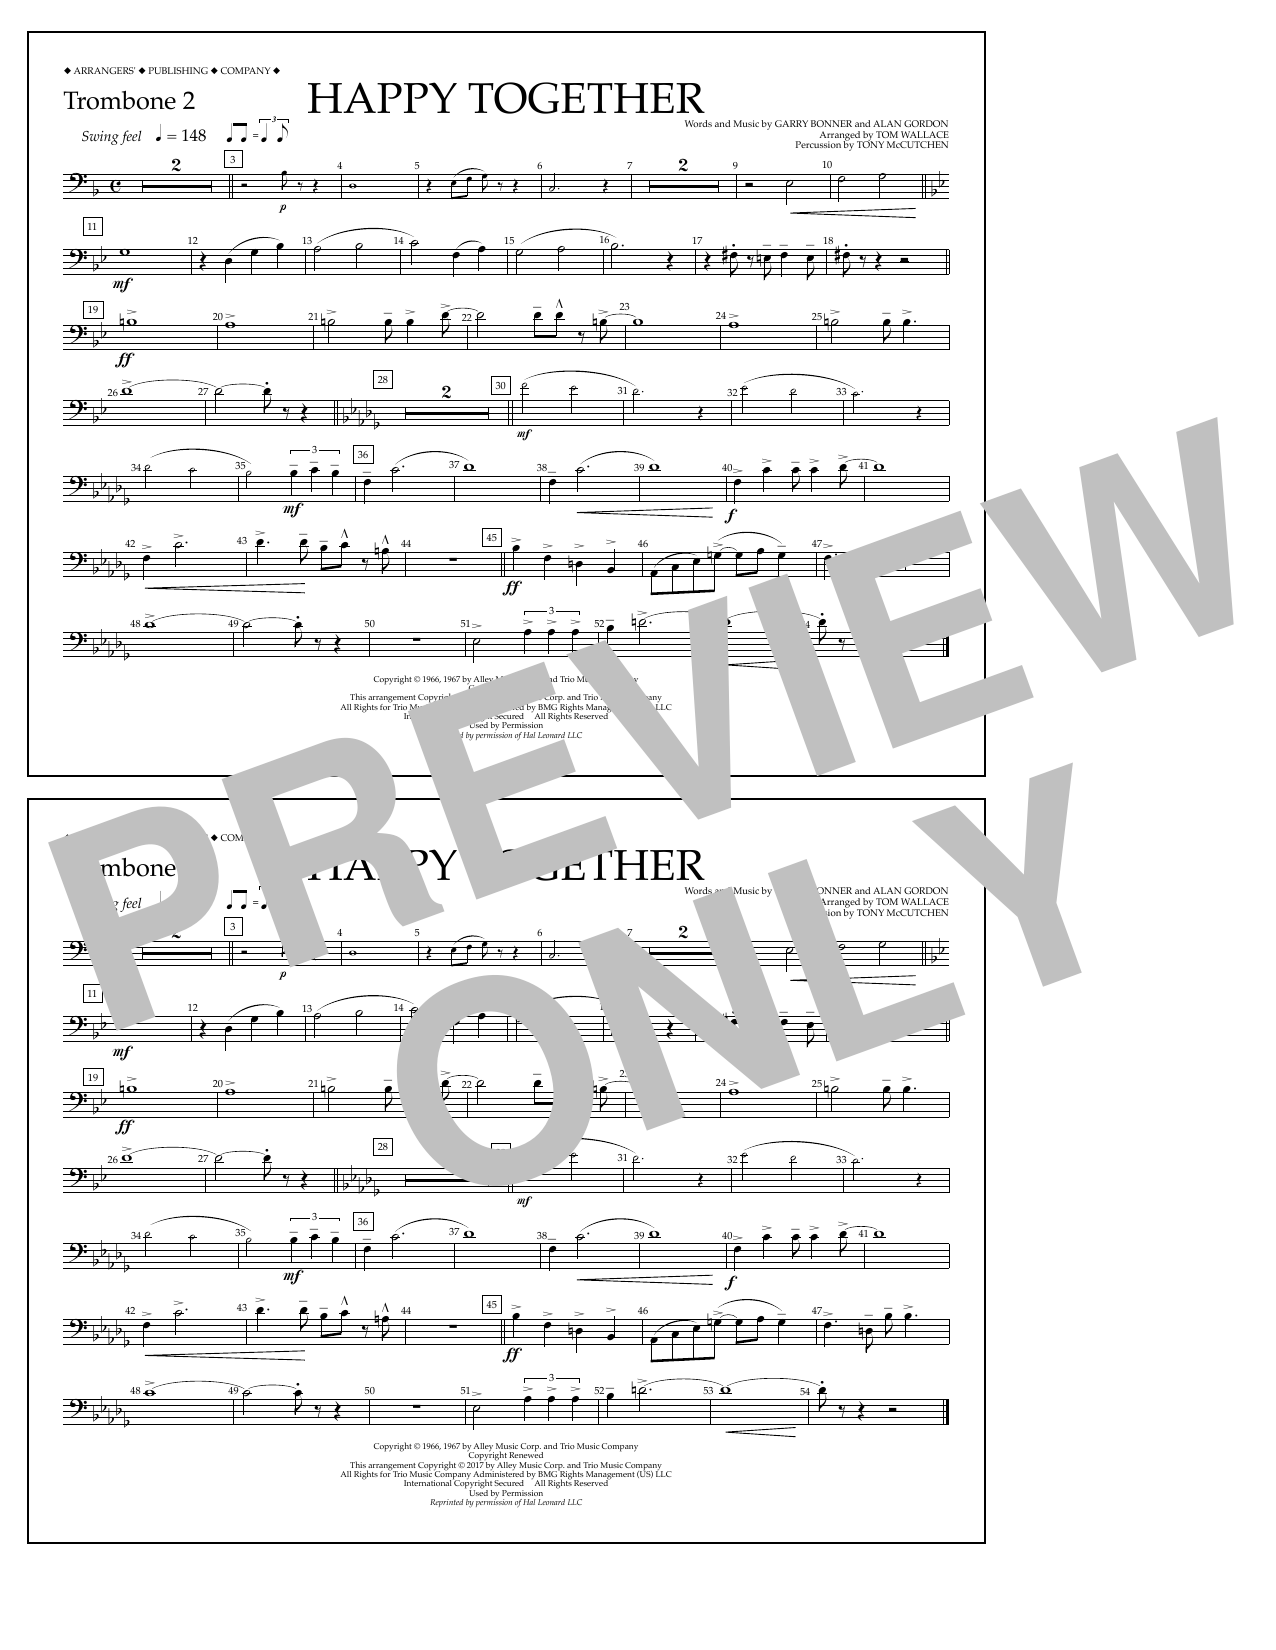 Happy Together - Trombone 2 Sheet Music